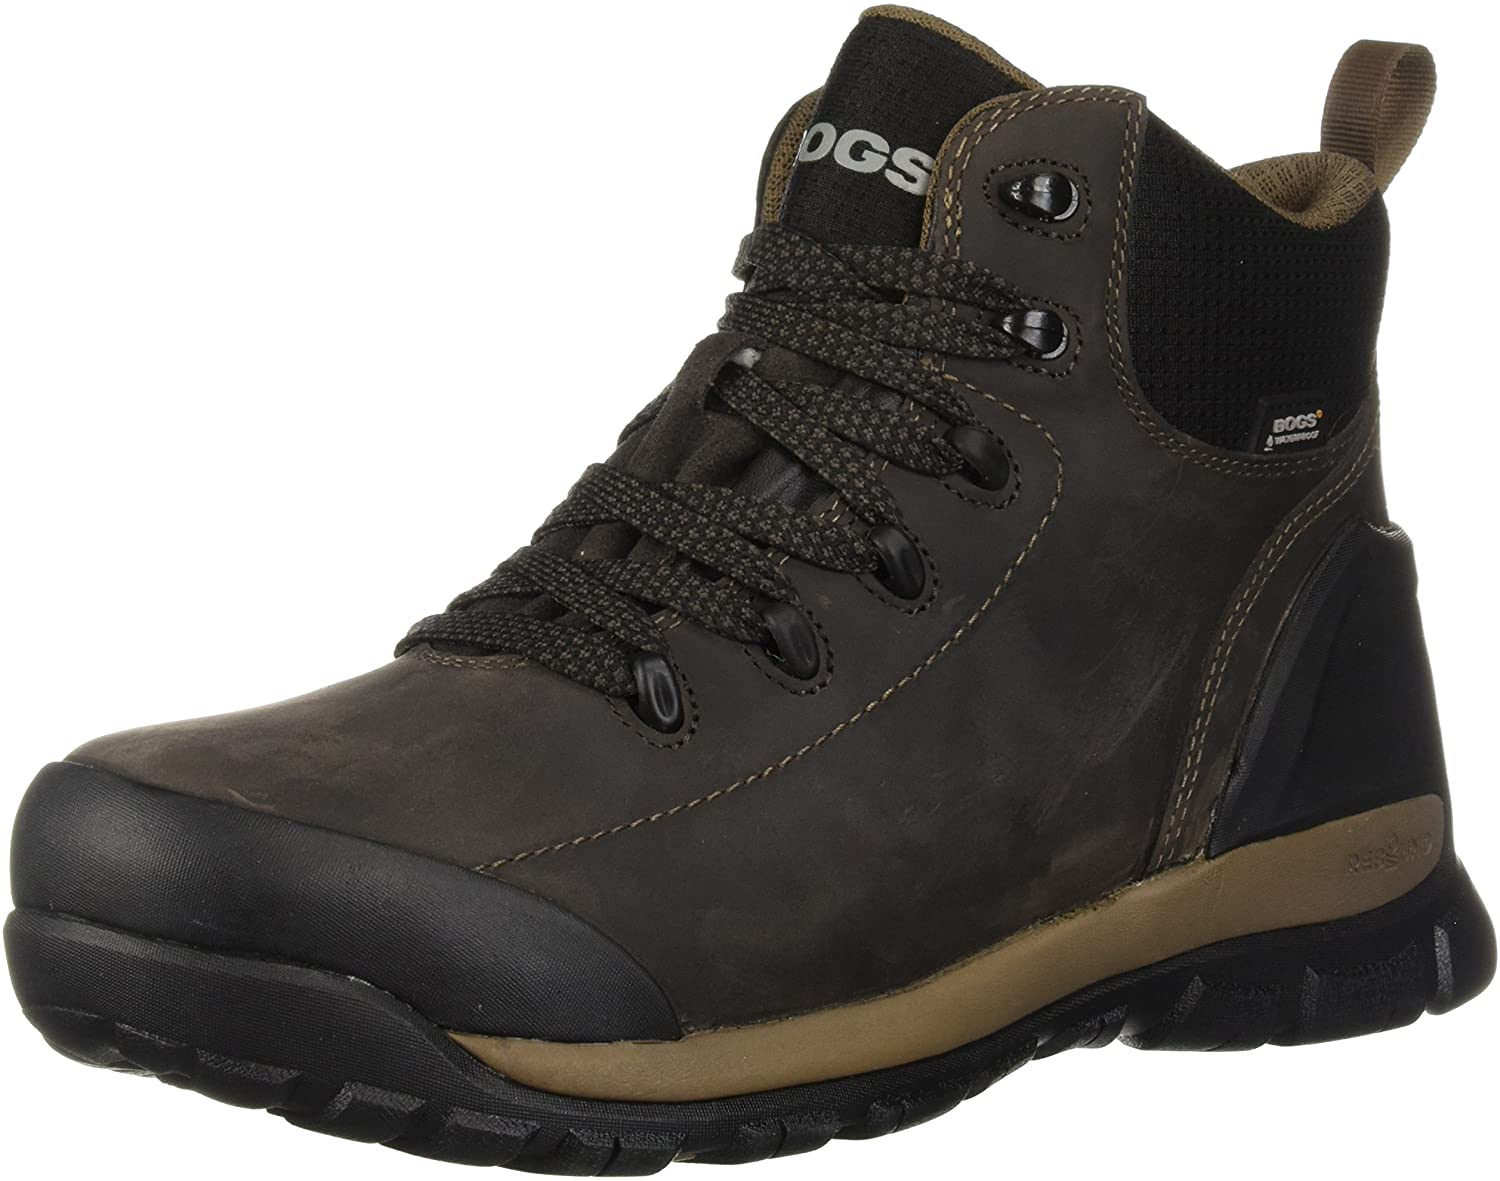 Bogs Men's Foundation Leather Mid Waterproof Soft Toe Industrial Boot